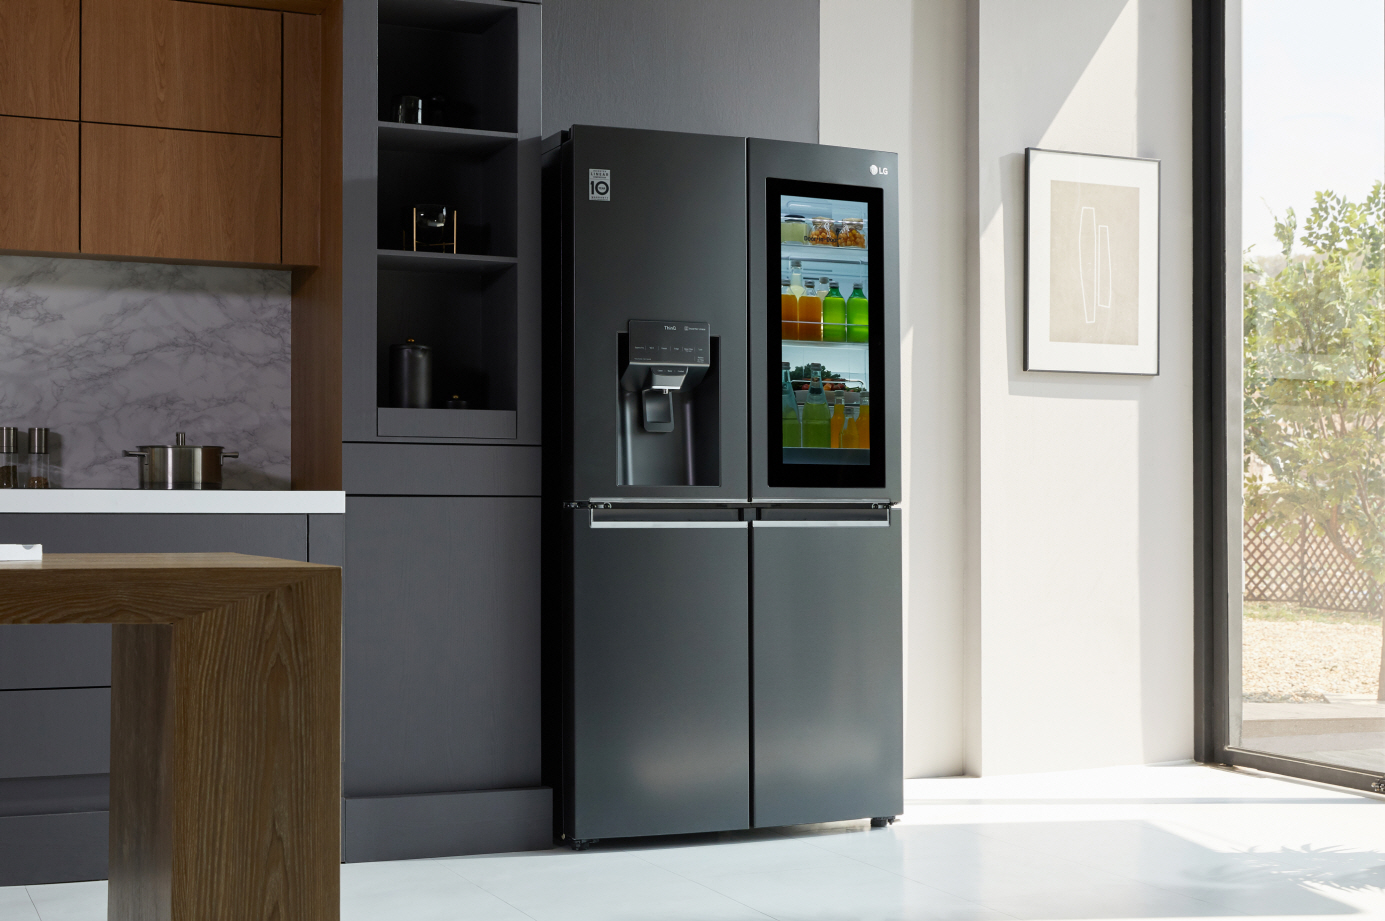 A kitchen with LG InstaView Door-in-Door refrigerator with UVnano showing its inside with InstaView becoming transparent